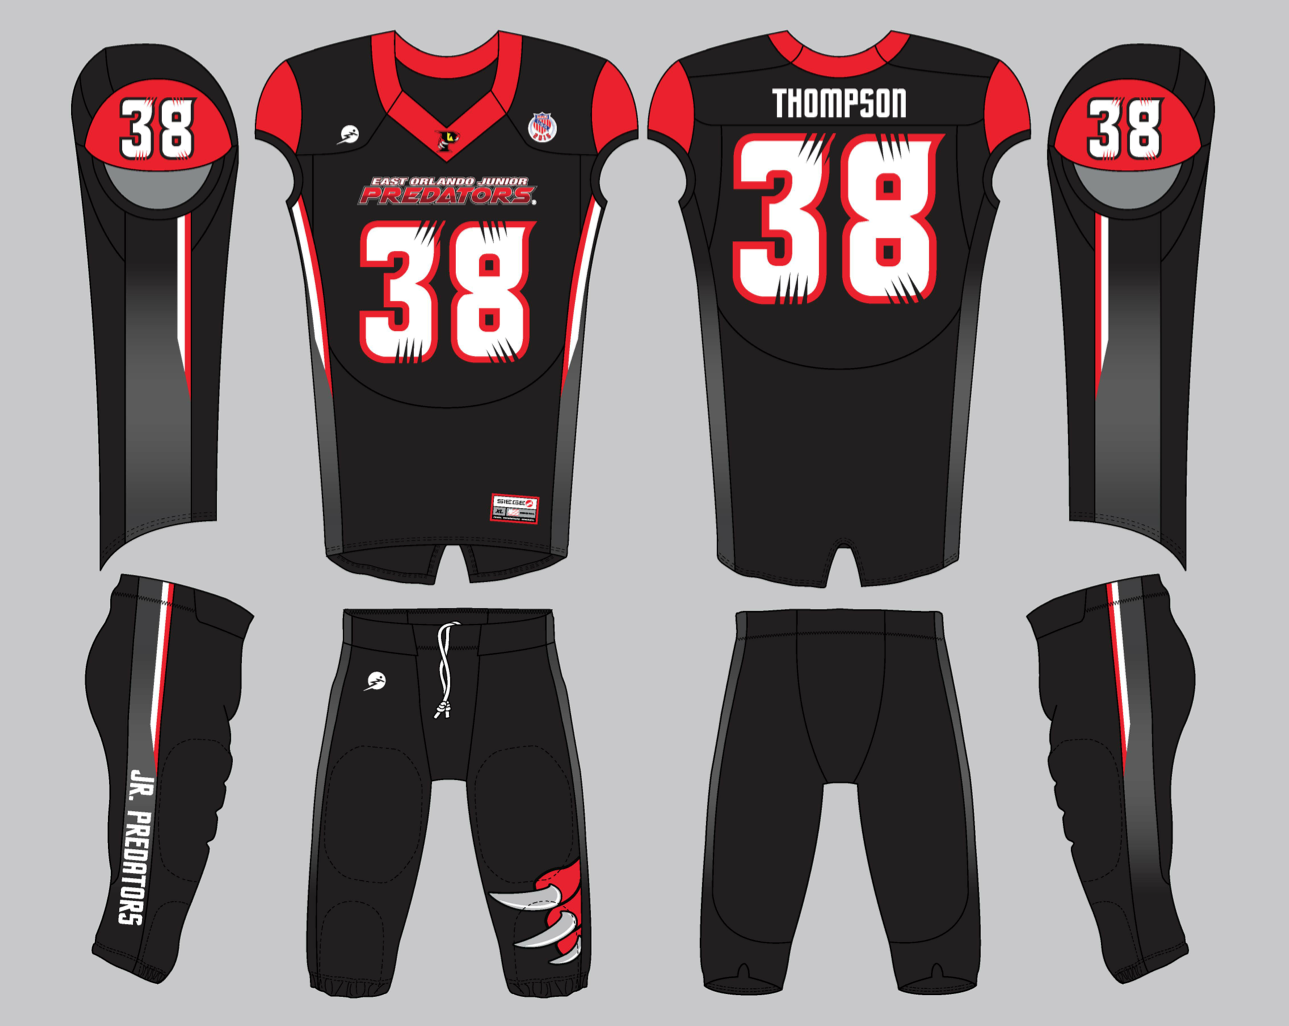 Image of Official 2015 East Orlando Jr Predators Uniforms